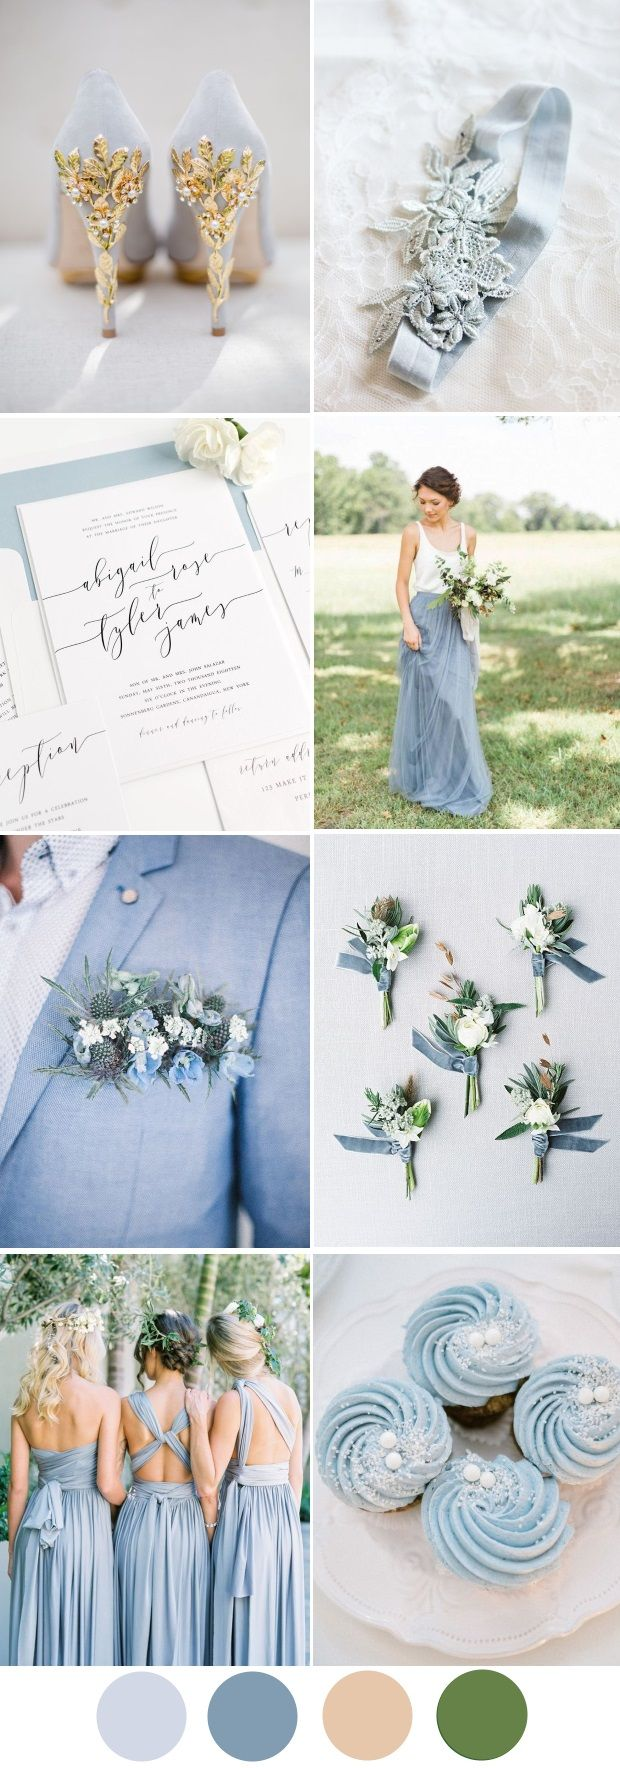 Dreamy Dusty Blue Winter Wedding Inspiration | Pinterest | Dusty ...